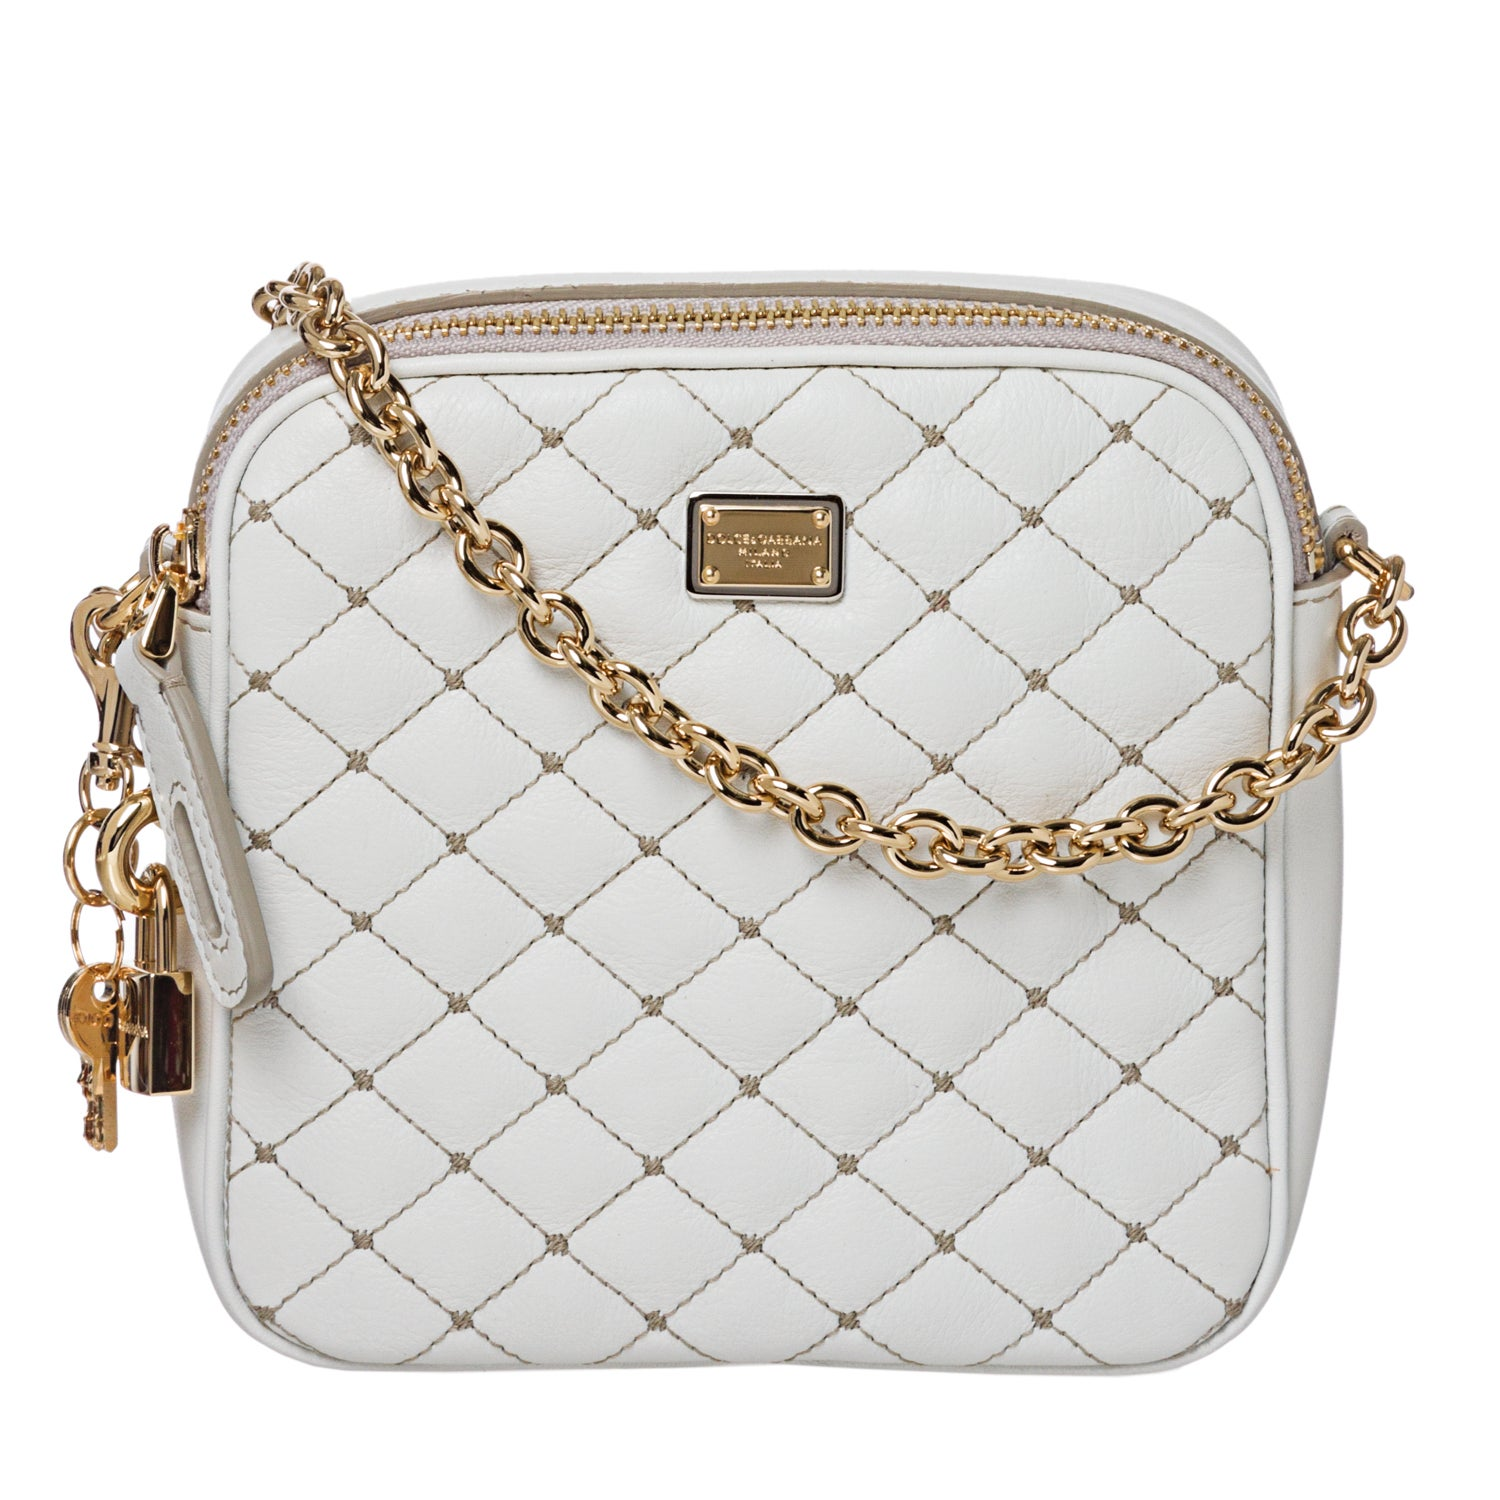 Dolce & Gabbana White Quilted Leather Cross-body Bag